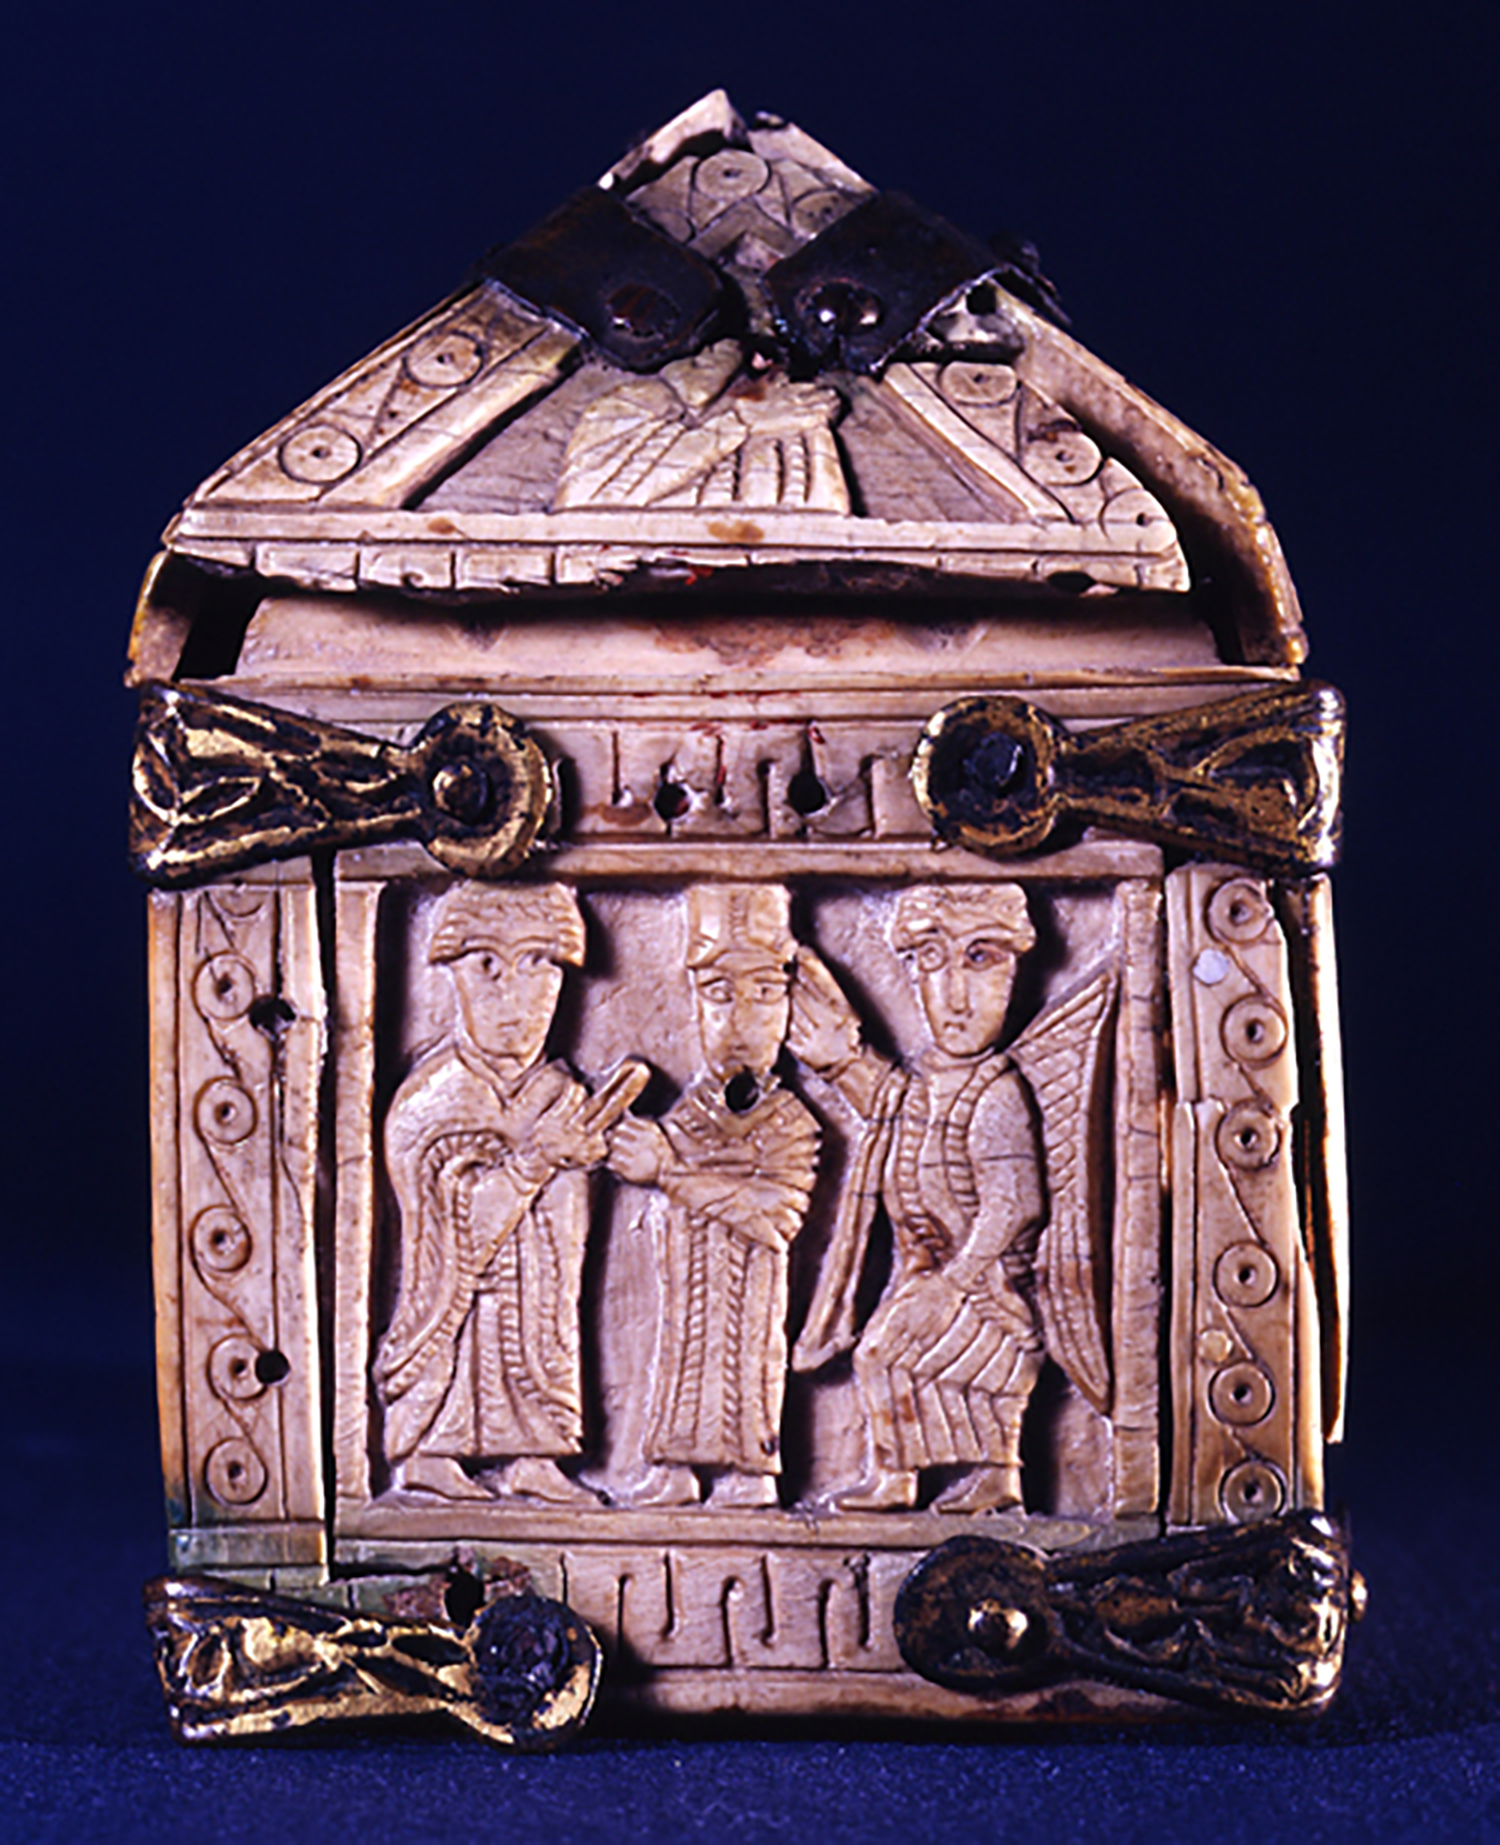 Figure 6: An angel and two other figures on one of the short sides of the box might depict Solomon's meeting with the Queen of Sheba.